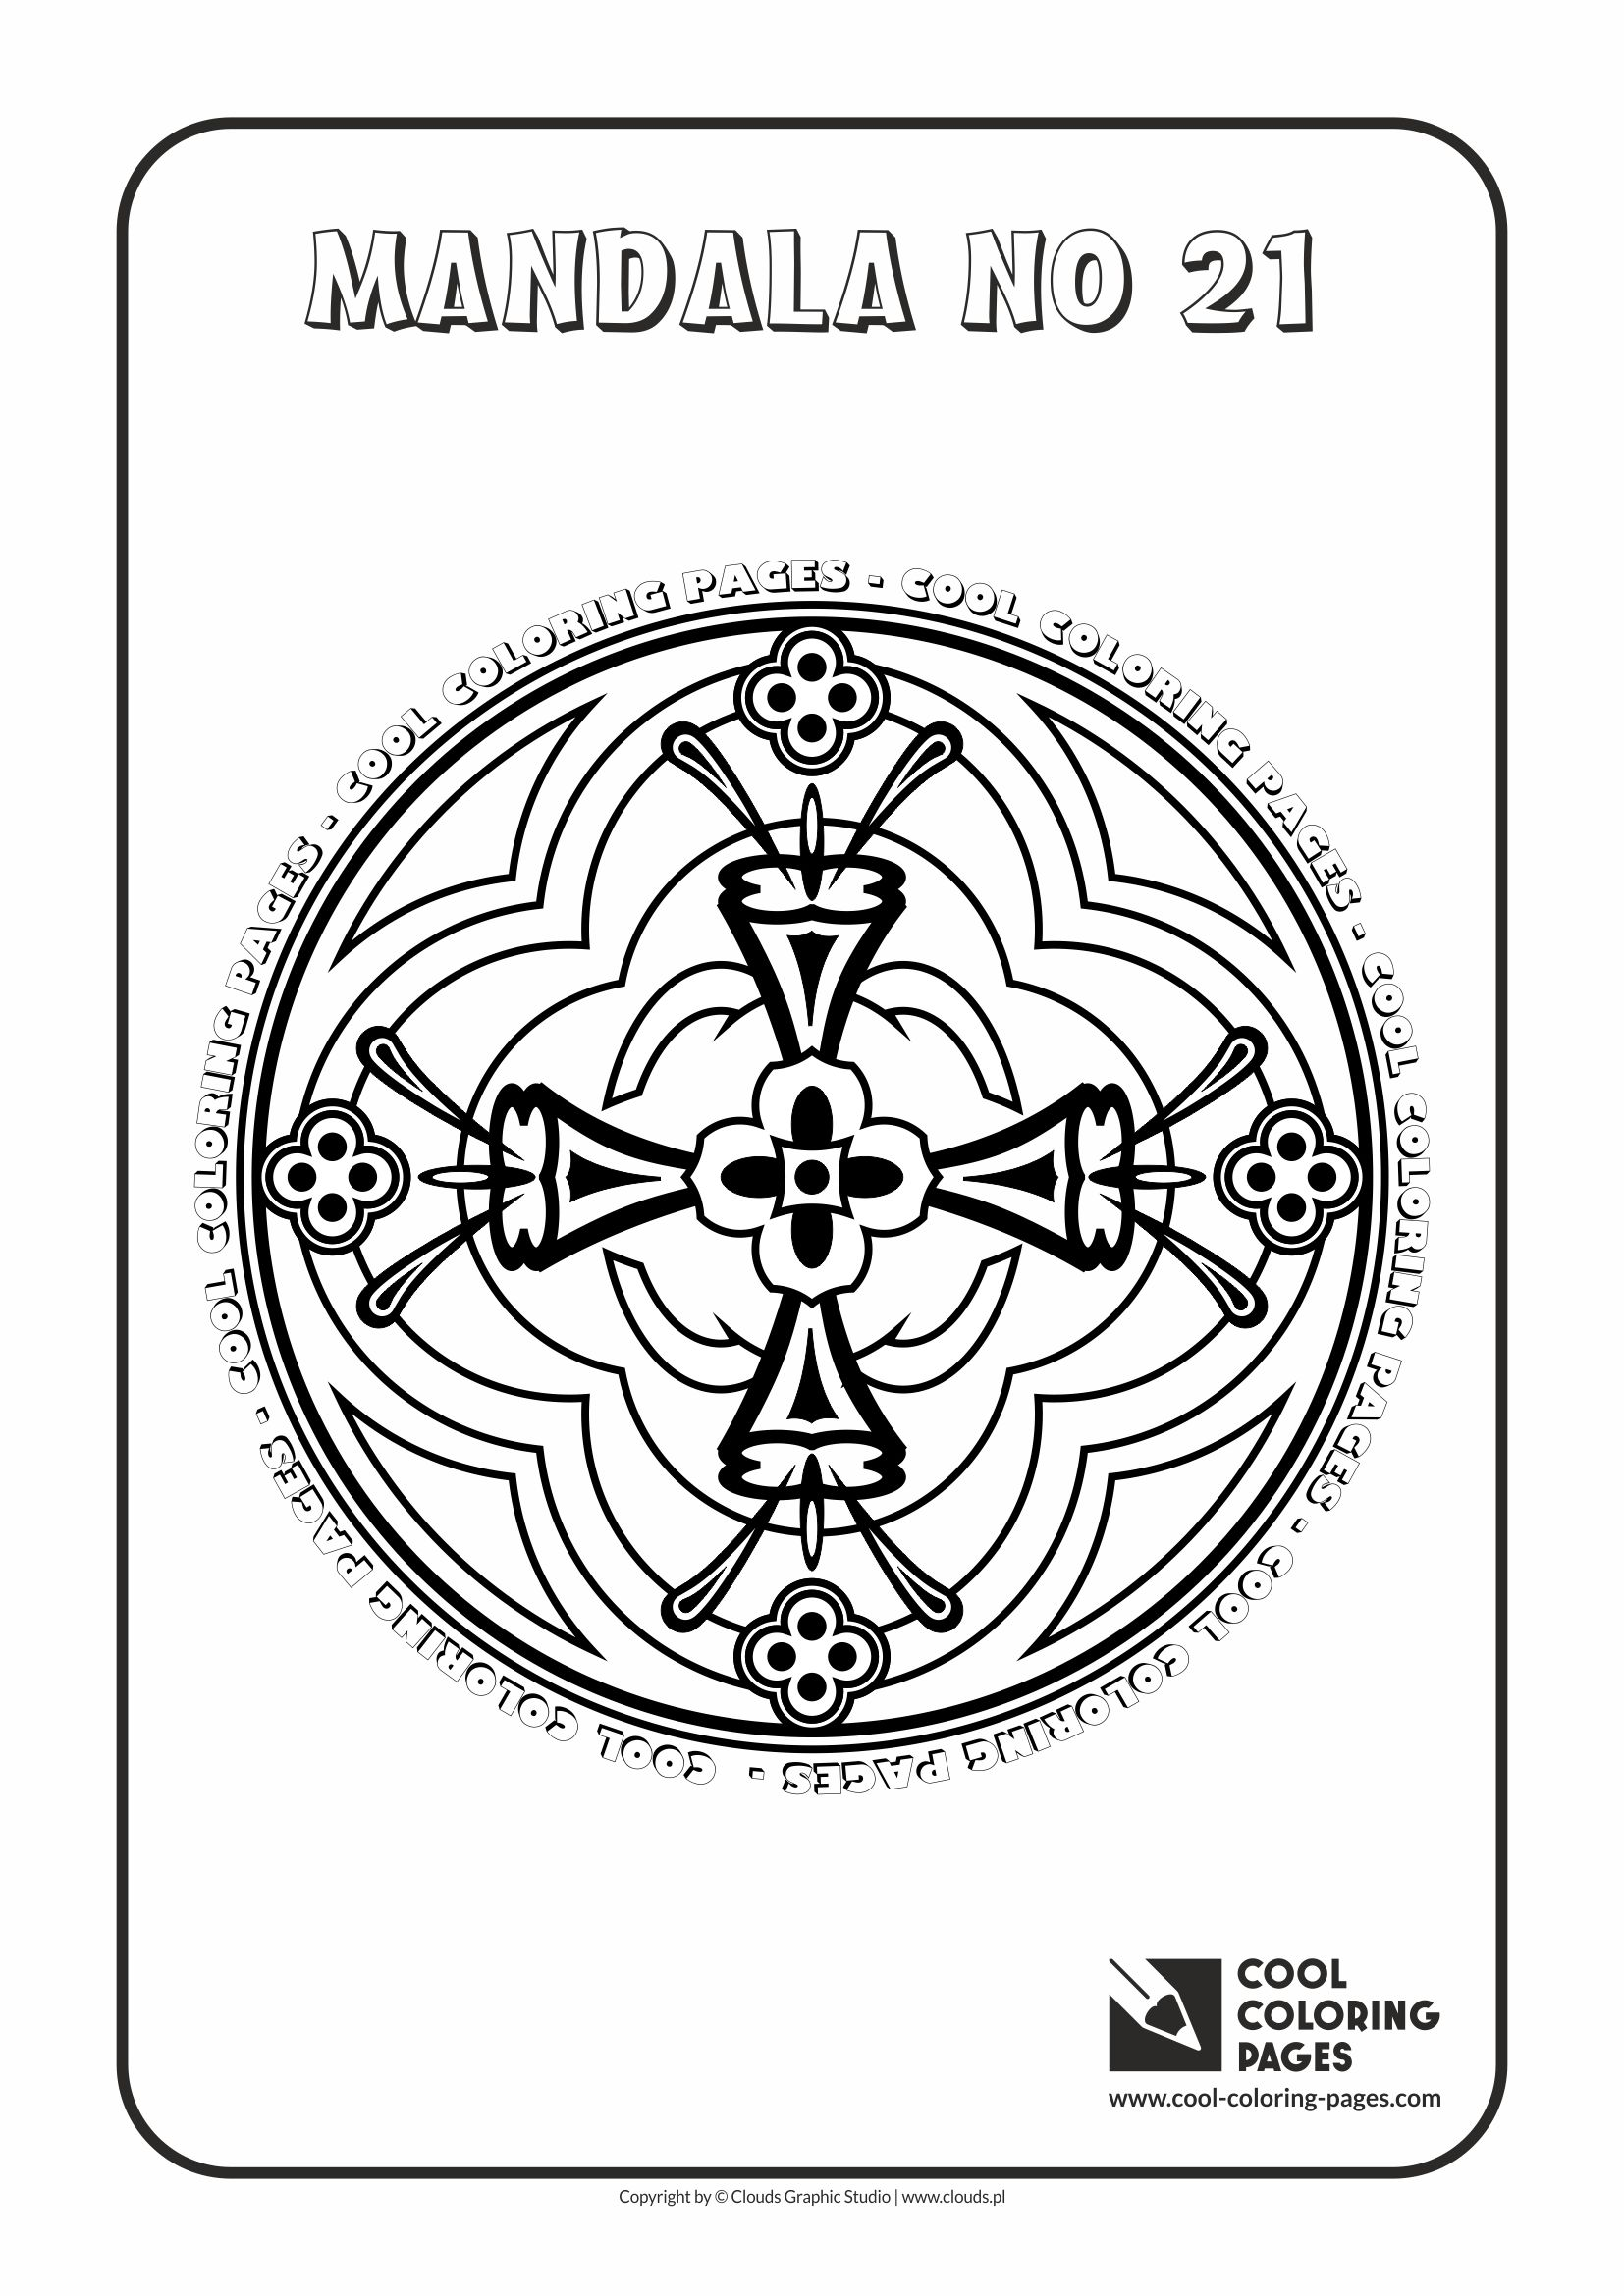 cool coloring pages mandalas 21